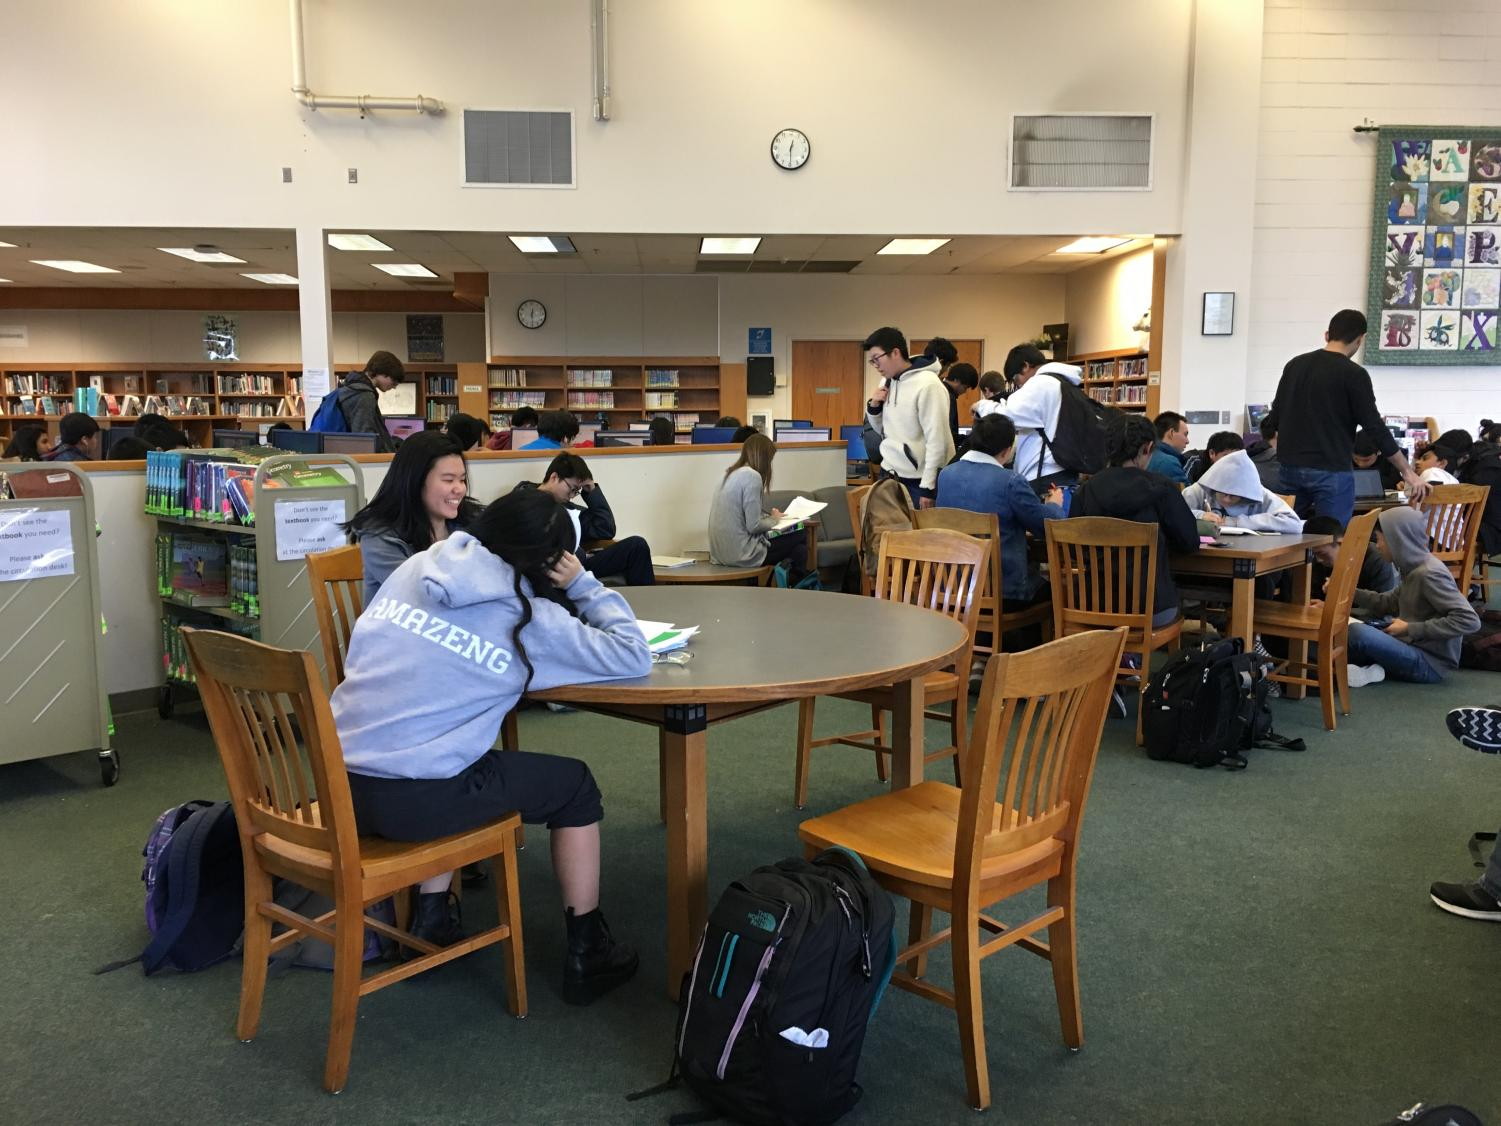 Students use the library to hang out and get work done.